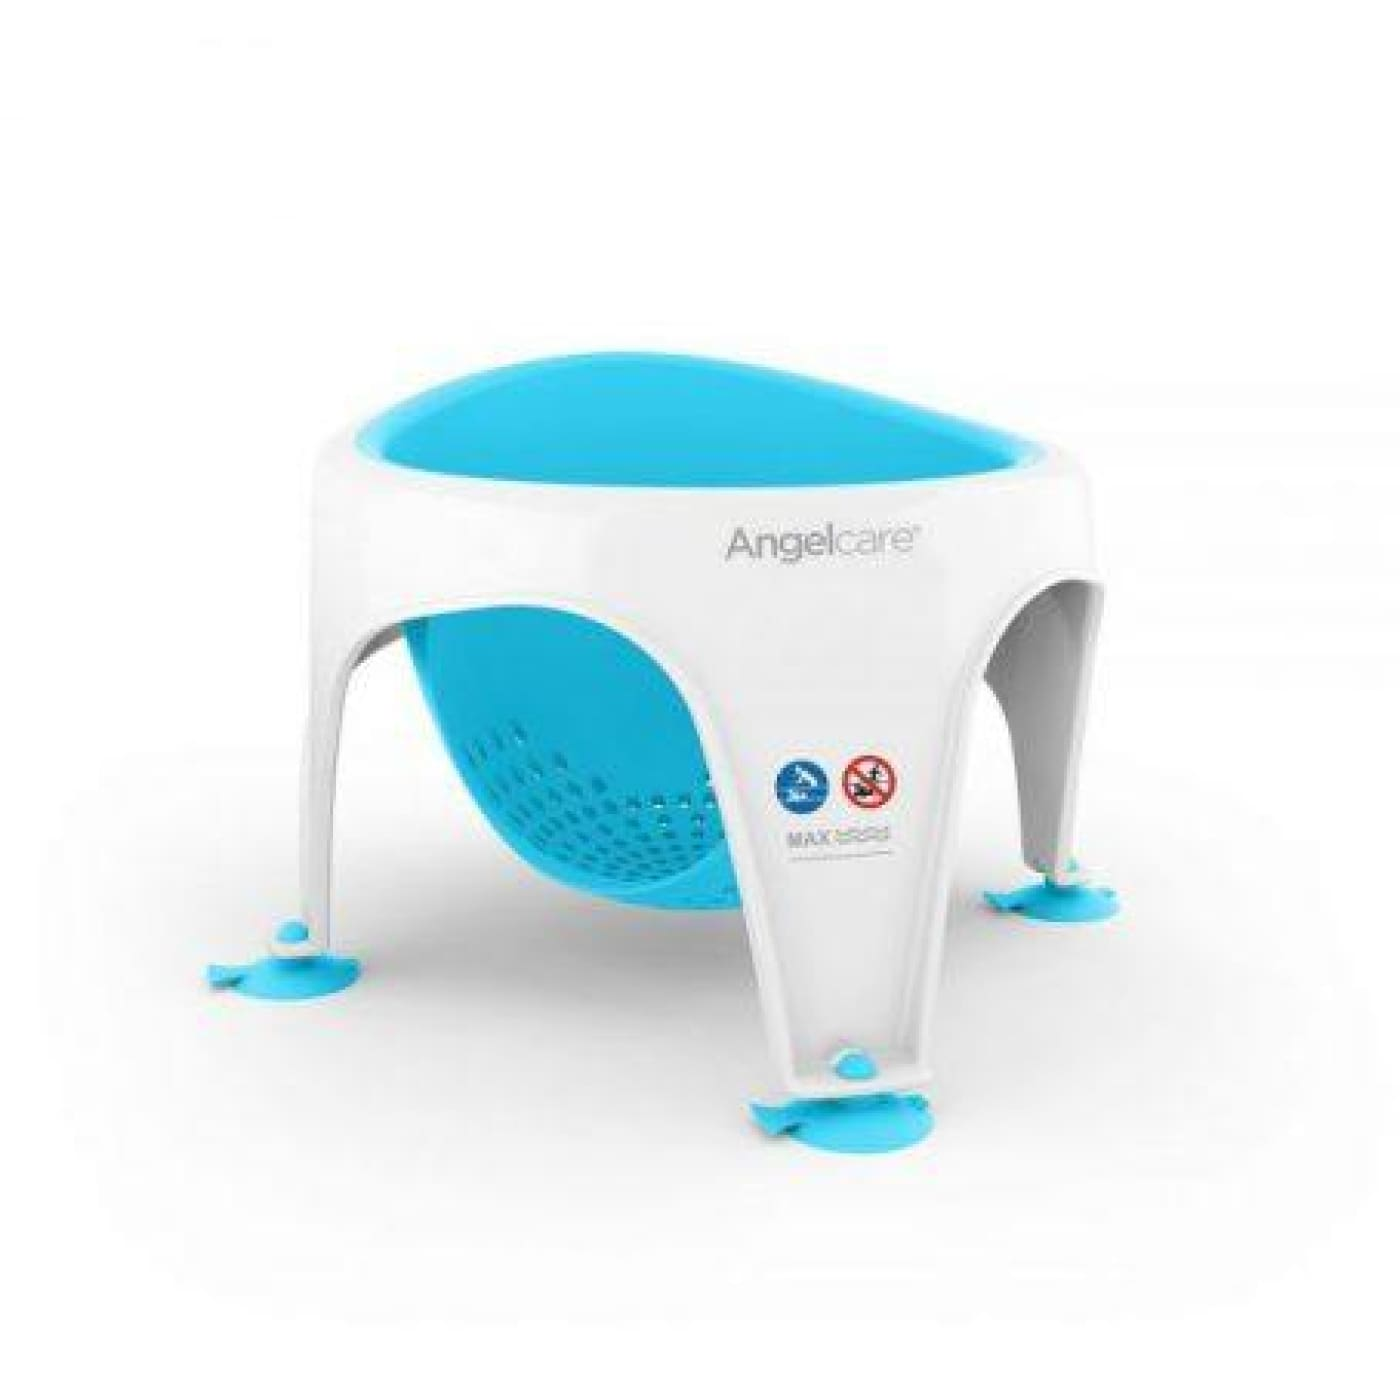 Angelcare Bath Seat Ring - Aqua - BATHTIME & CHANGING - BATH SUPPORTS/SEATS